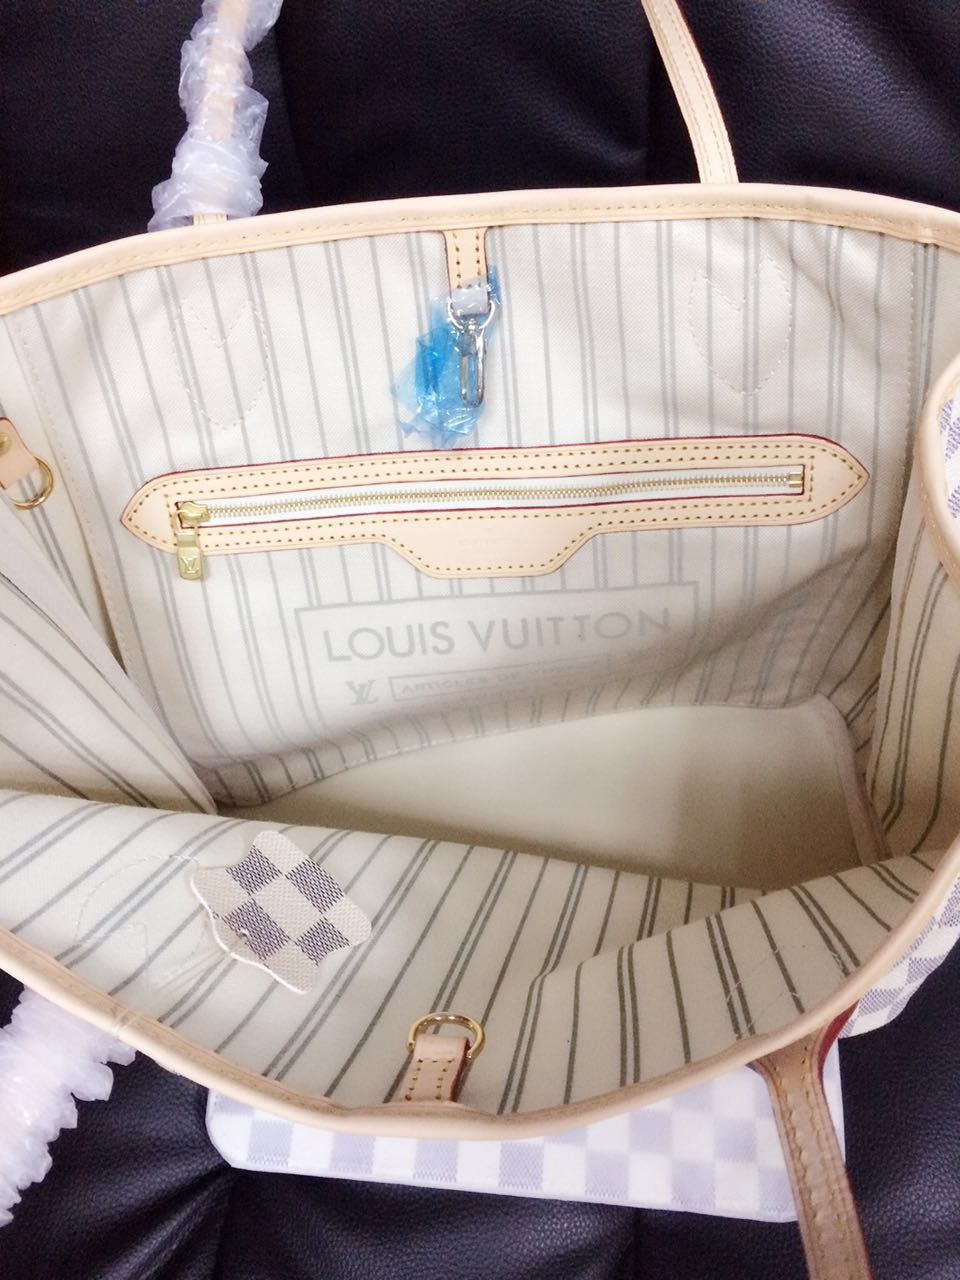 louis vuitton neverfull white. inside louis vuitton neverfull replica white